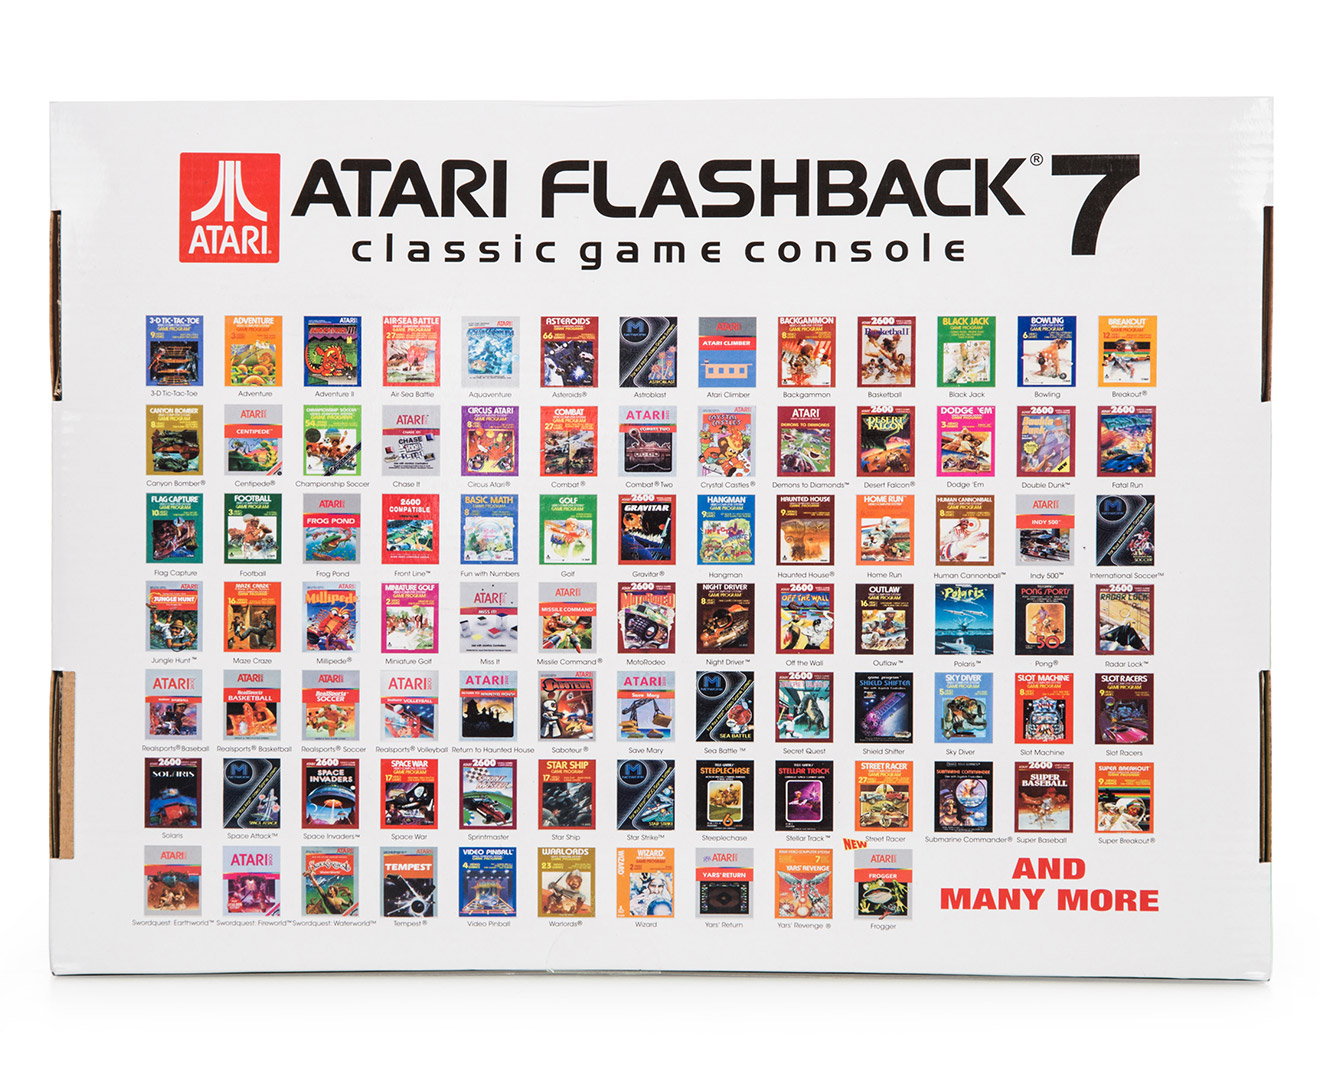 atari flashback 6 list of games